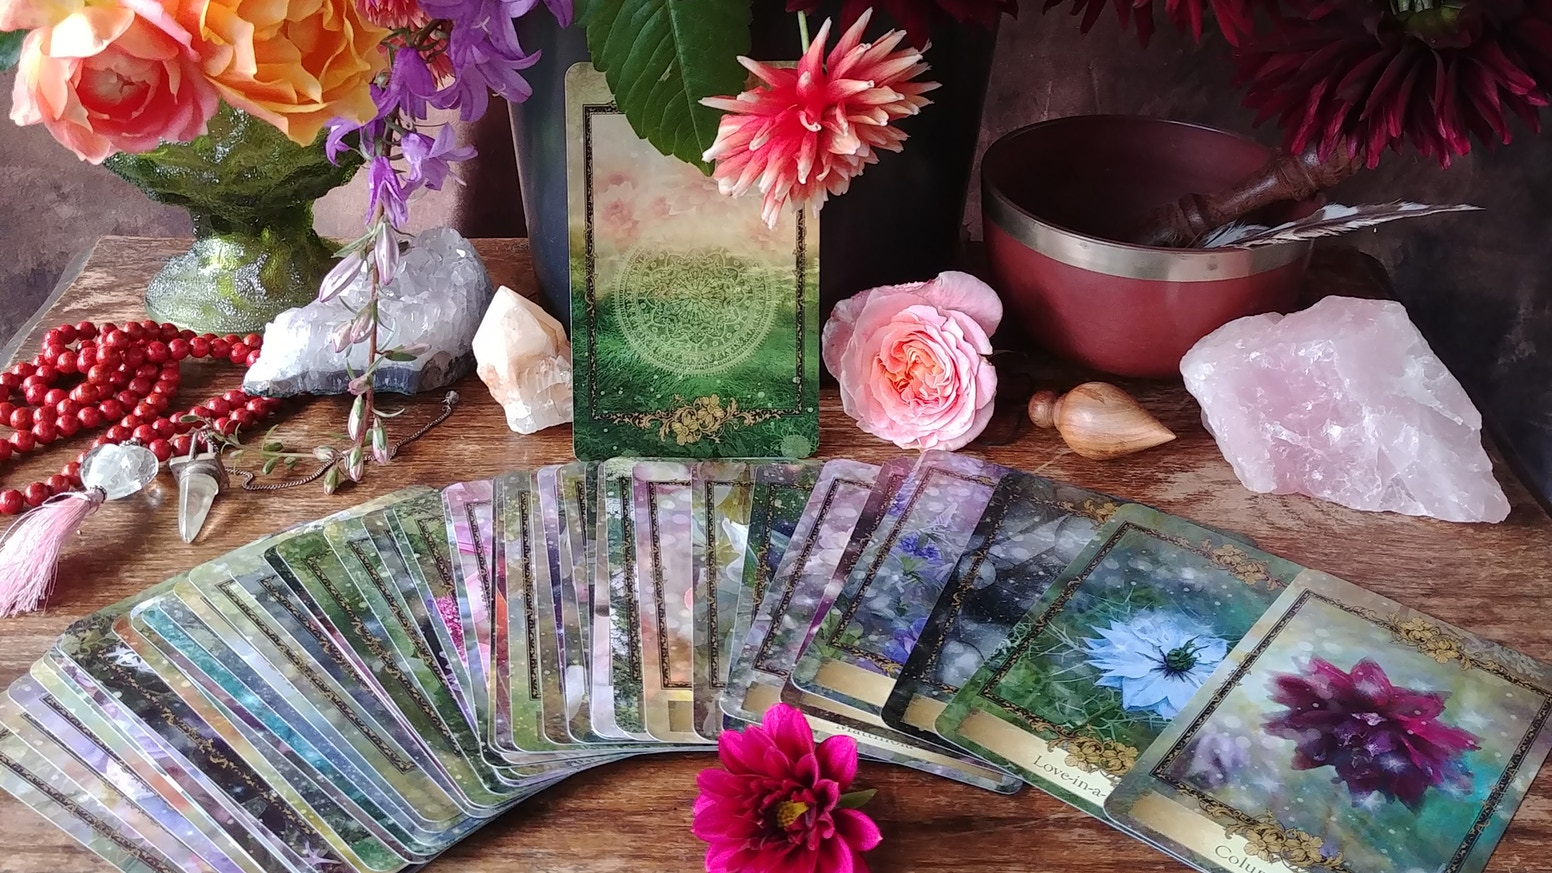 Alchemy Flower Oracle Messages From Flowers By Ingrid Koivukangas